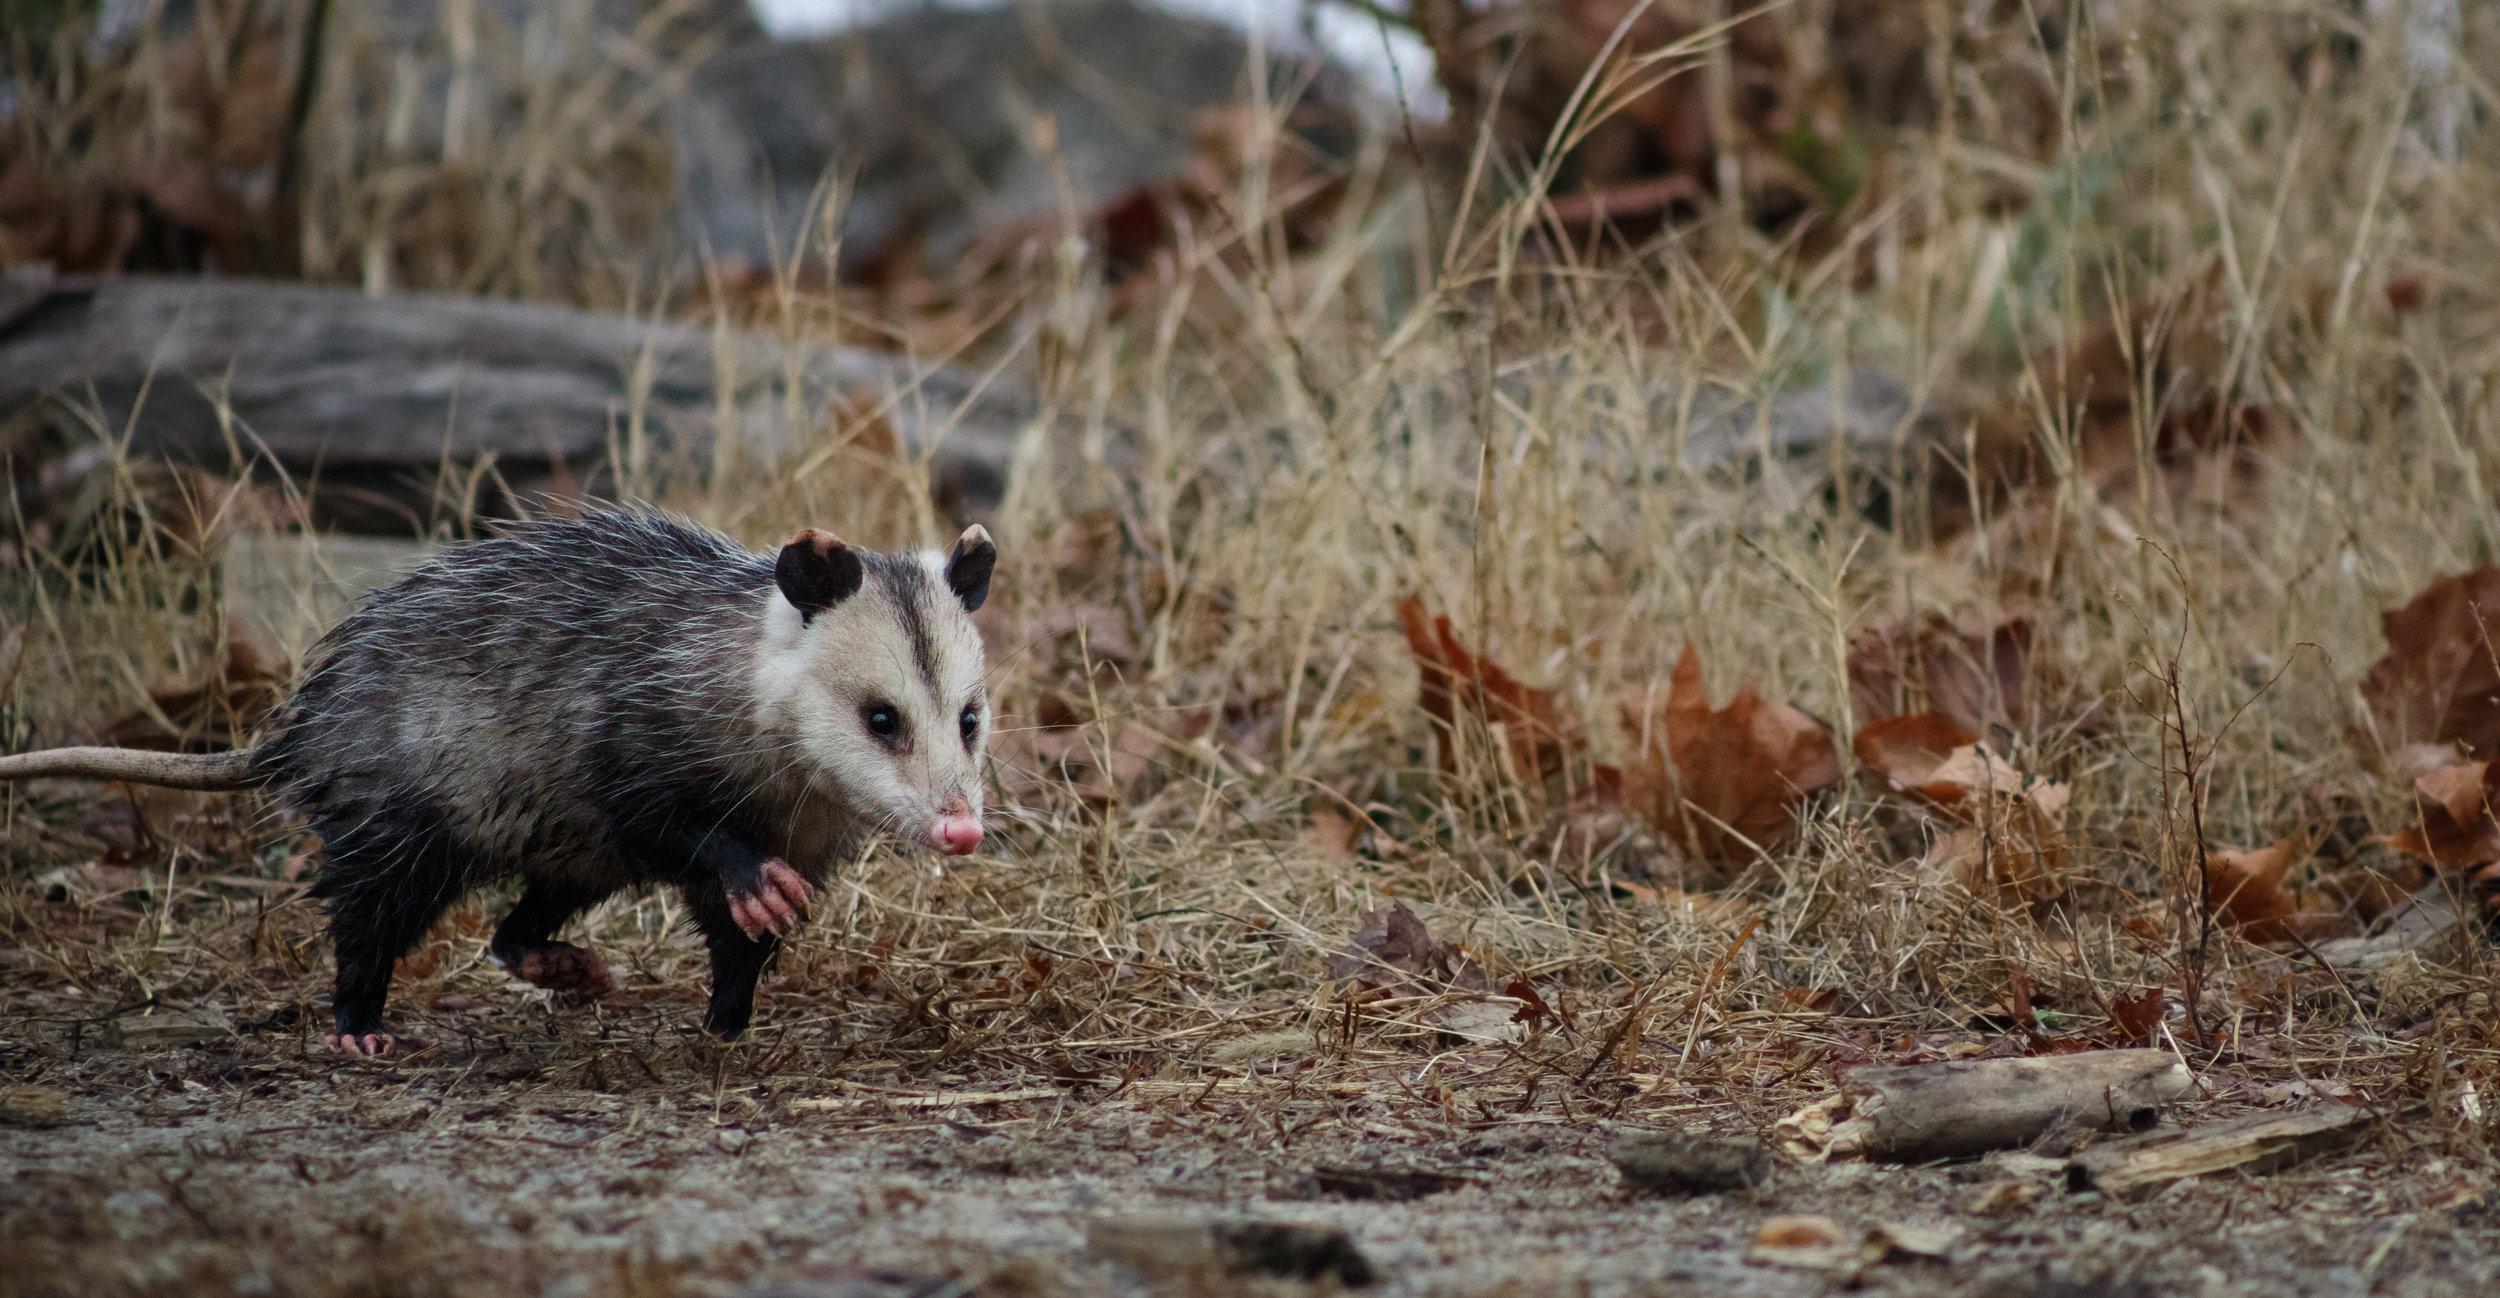 Opossum ( Didelphimorphia ) running past during the day in Occoquan Bay National Wildlife Refuge in Occoquan, Virginia.